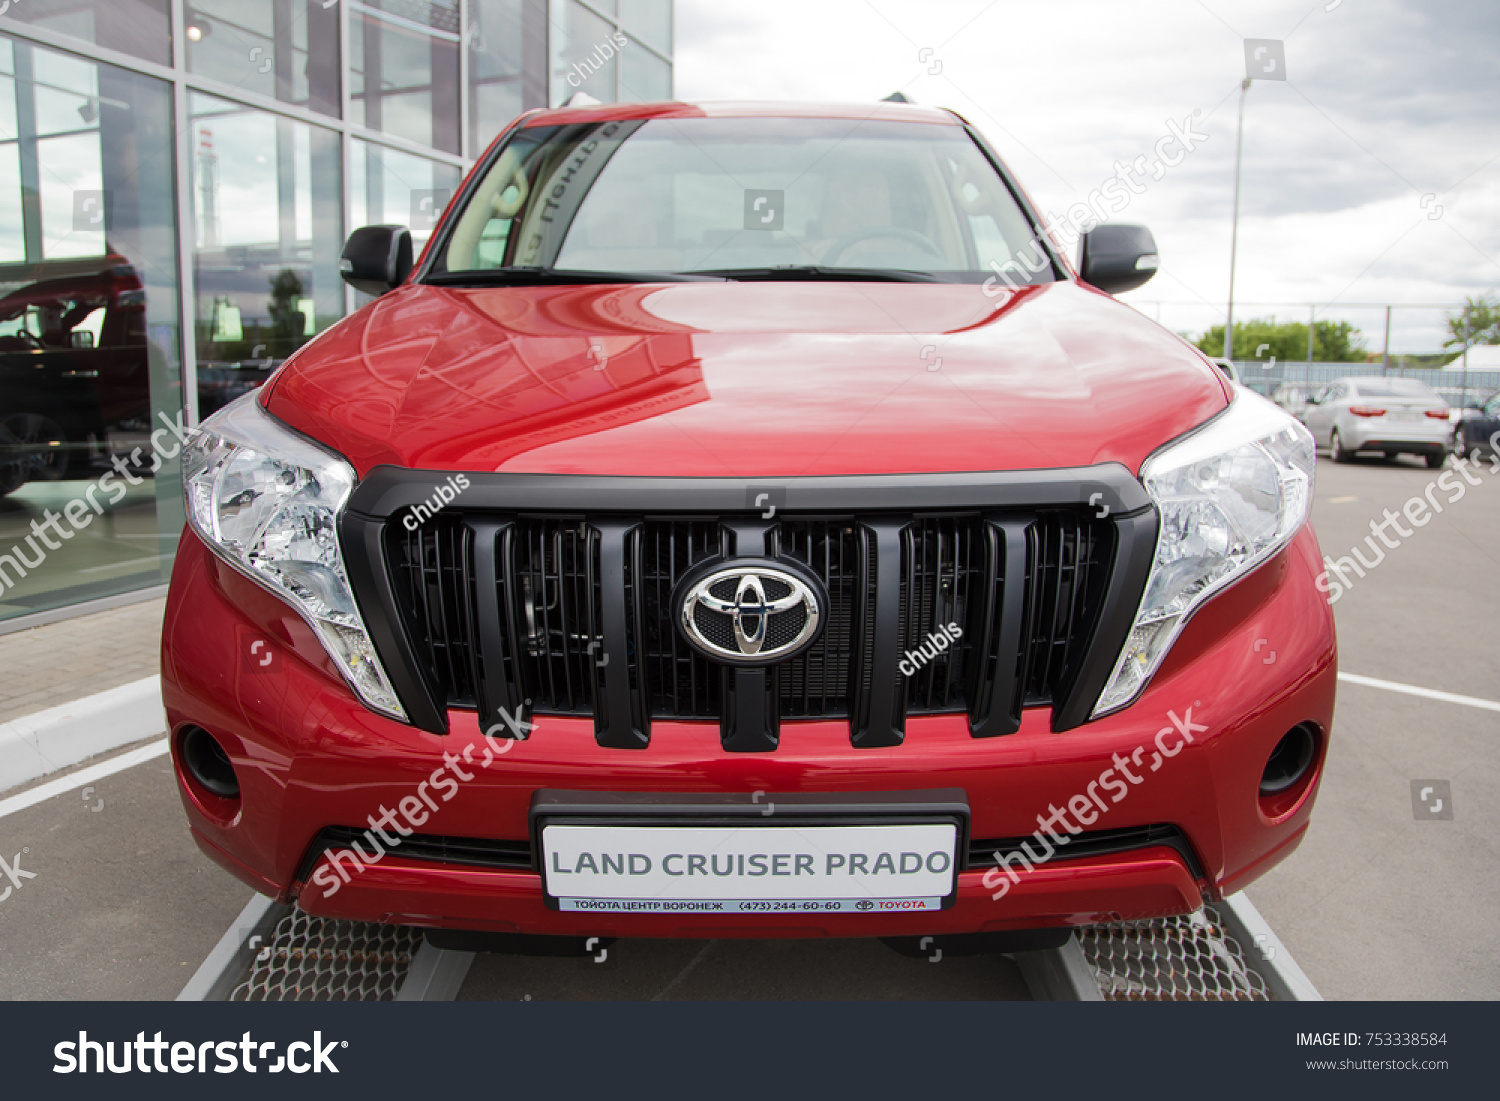 Voronezh Russia May 28 2017 Example Stock Photo Edit Now 753338584 Toyota Land Cruiser Prado Suv Car Of New Captured